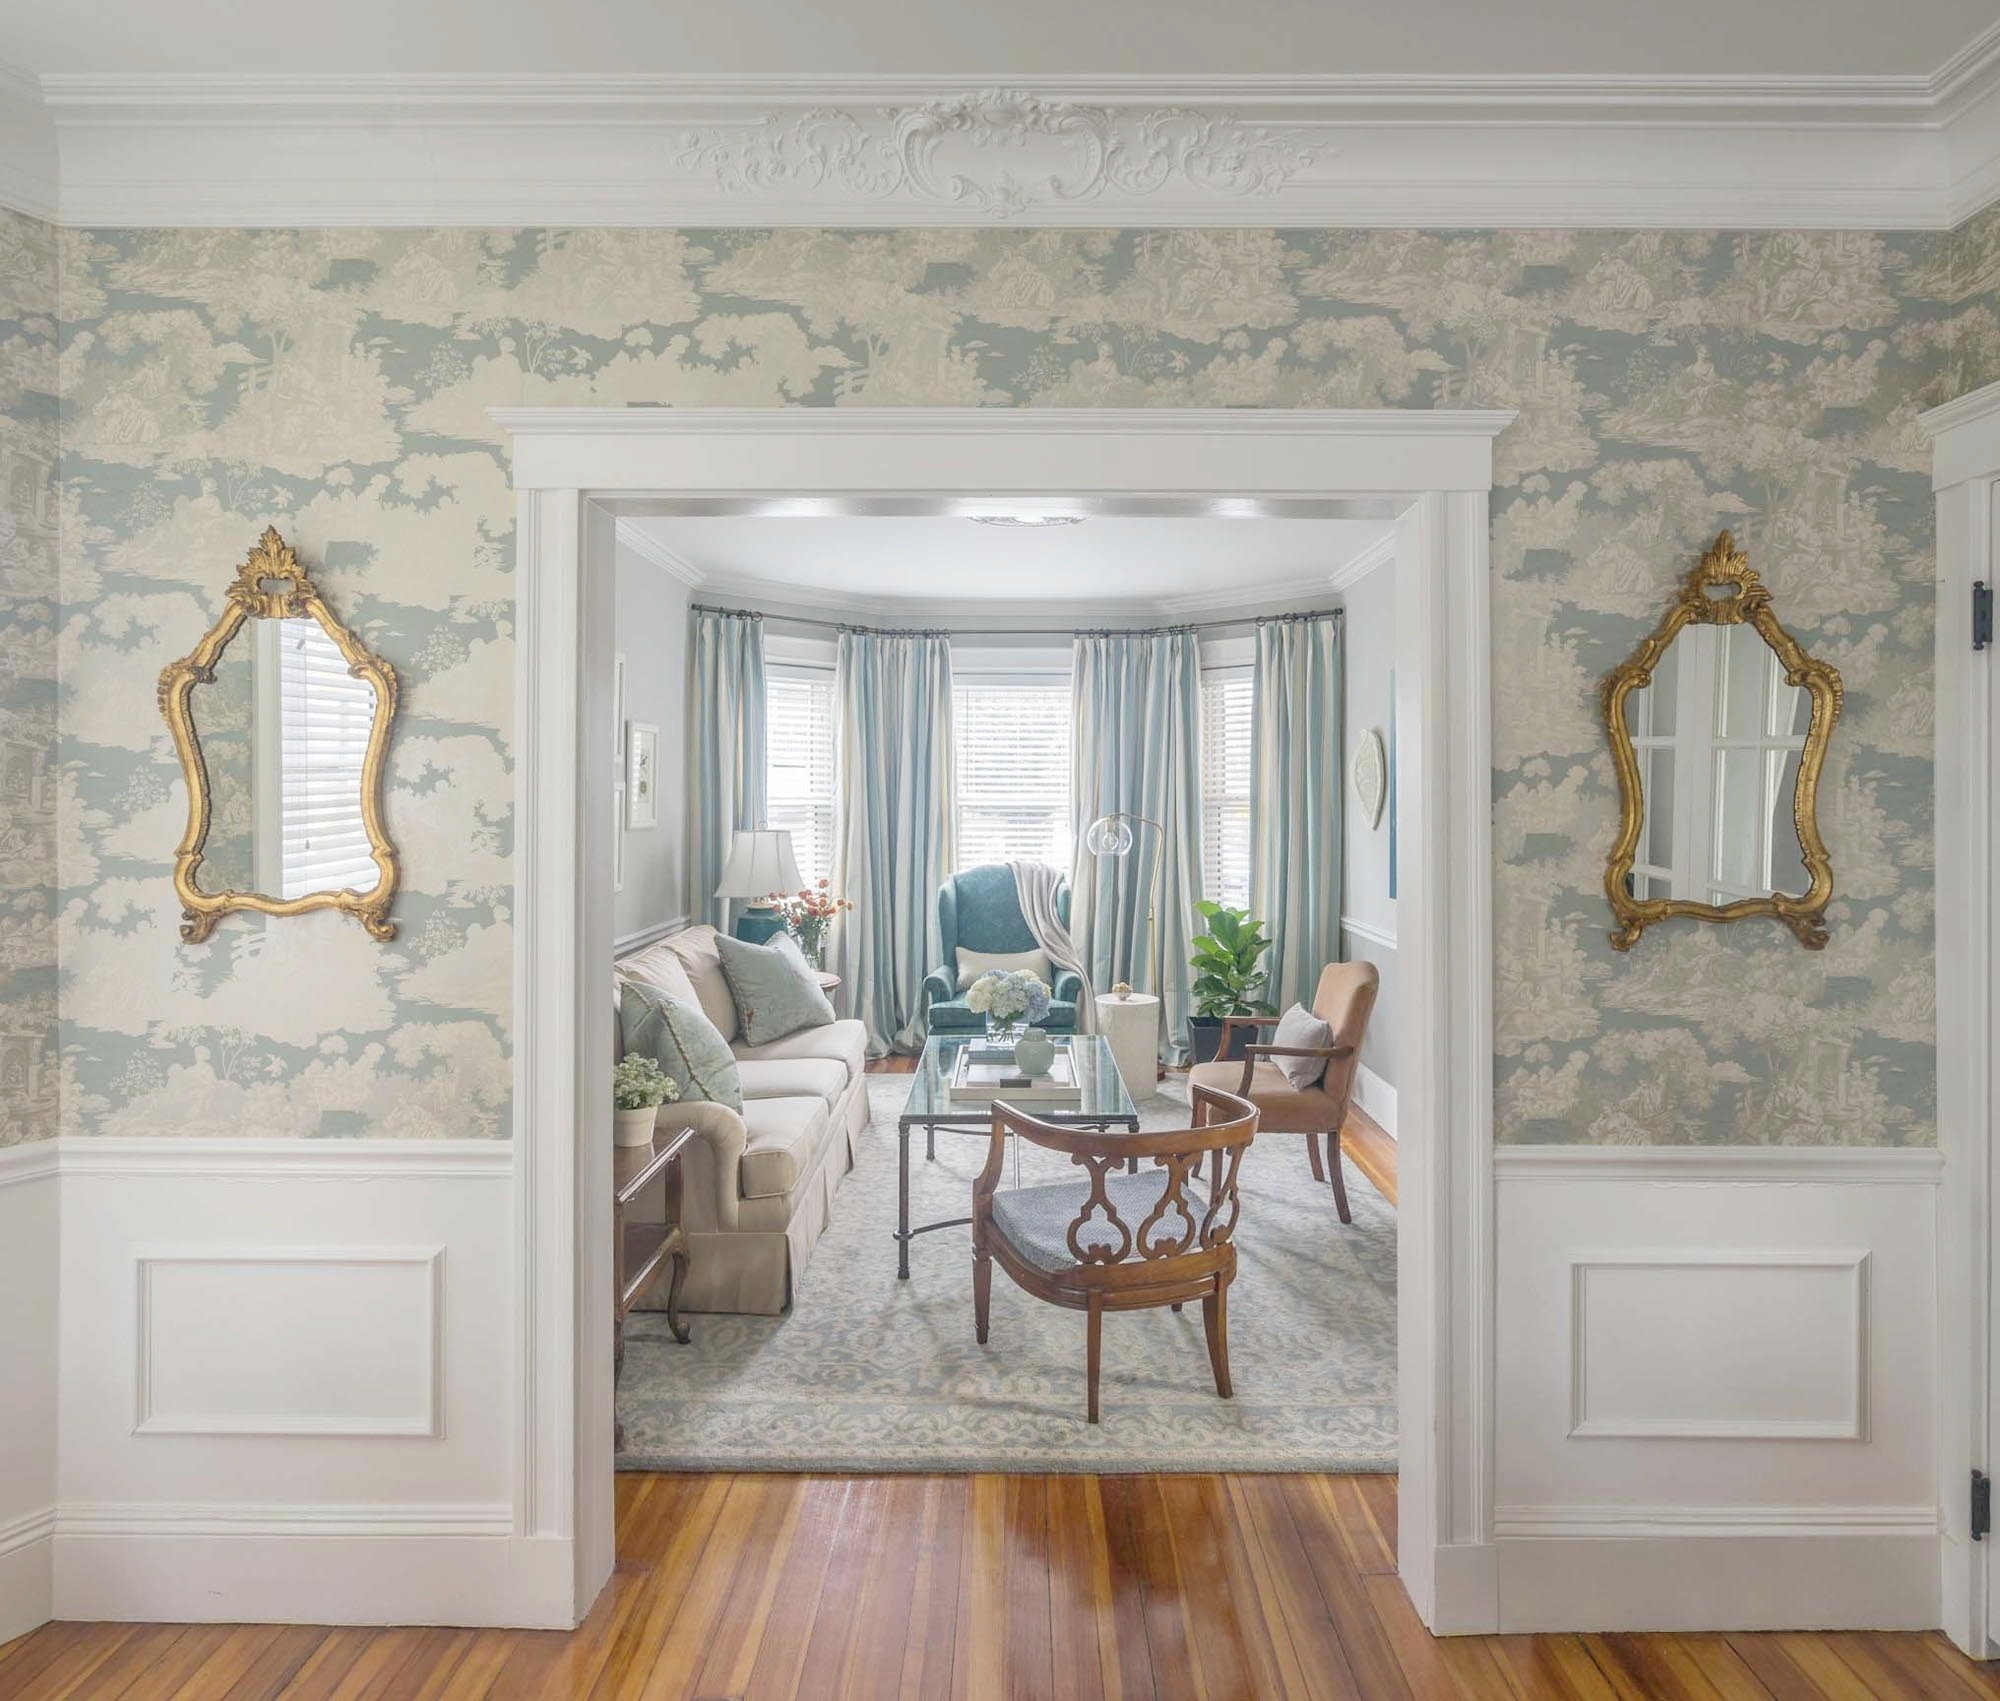 Entrance view of a living room interior with two stylish mirror on the walls.